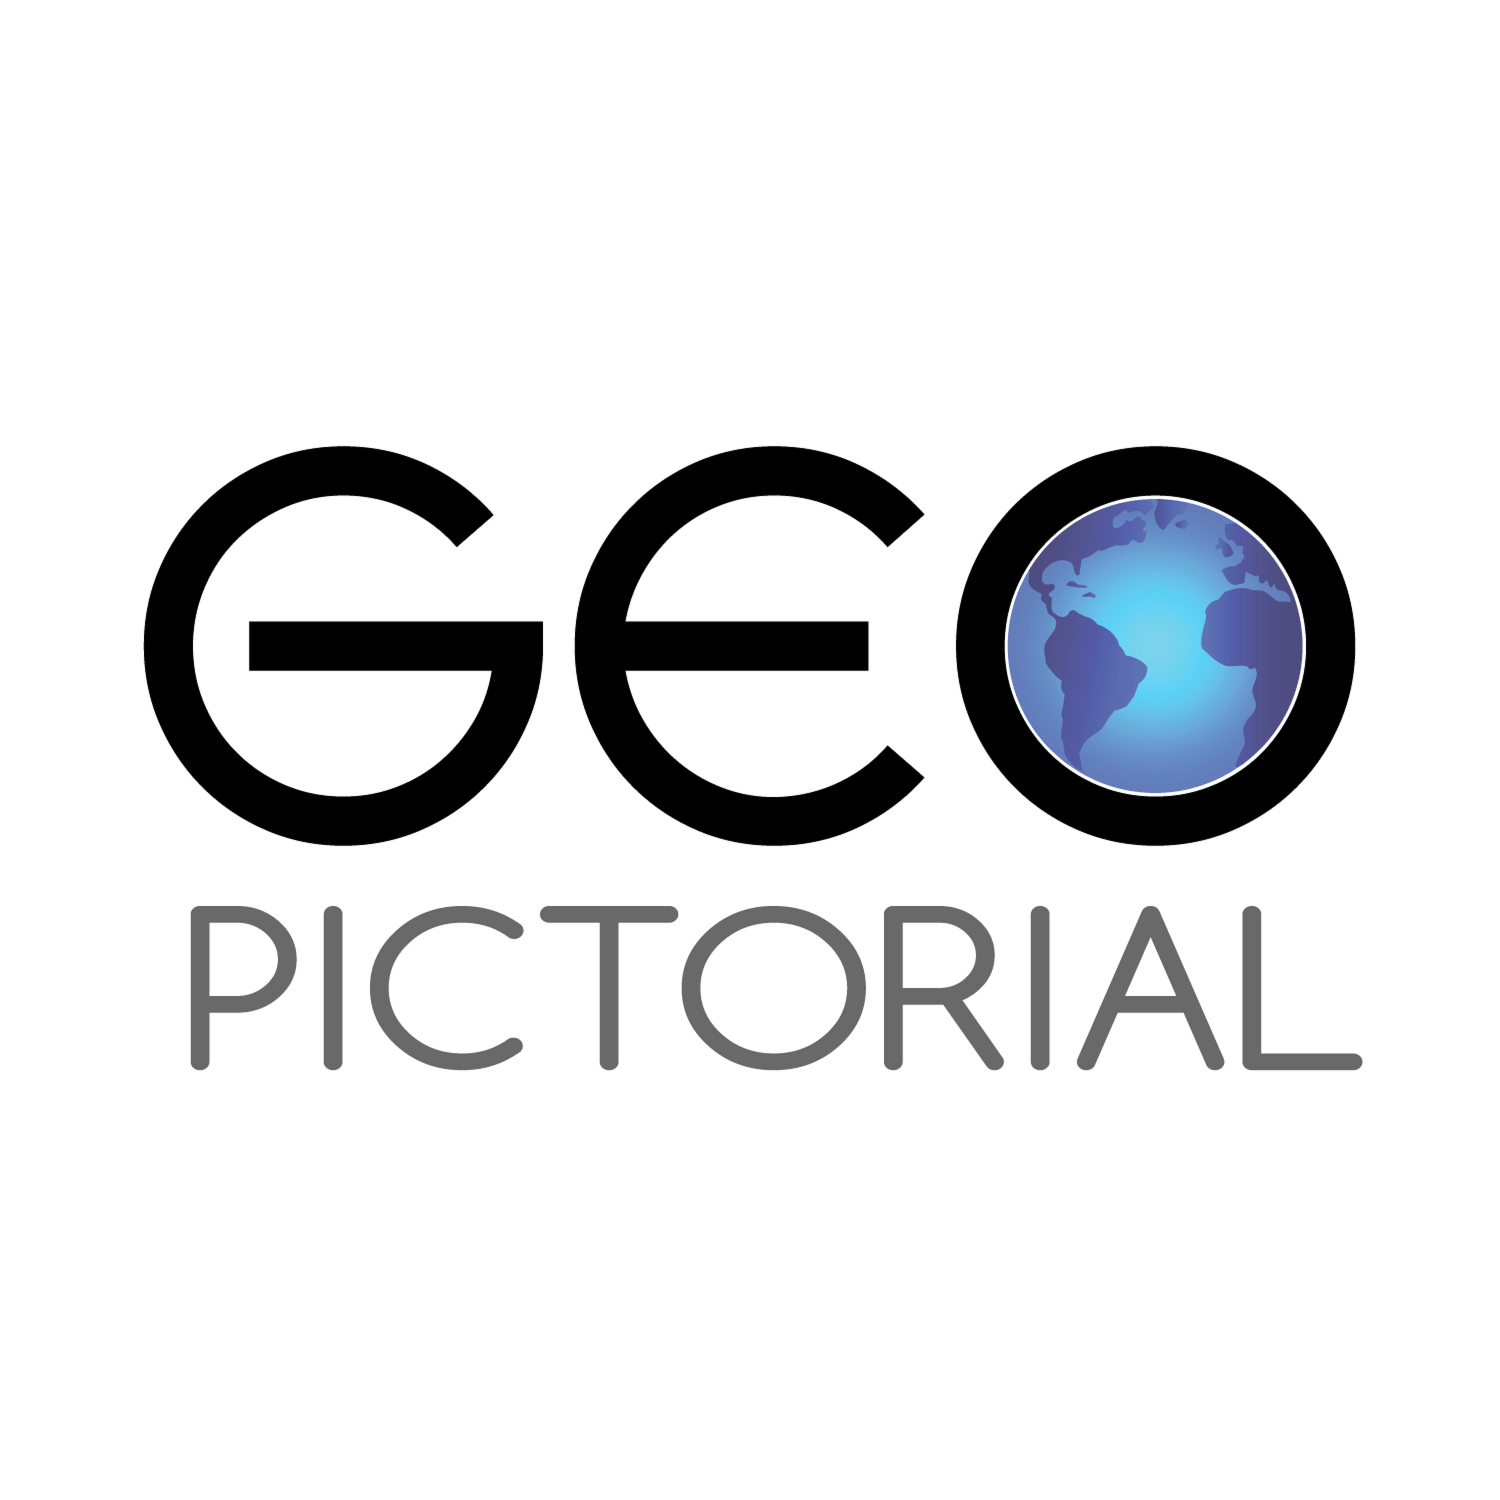 GEO Pictorial